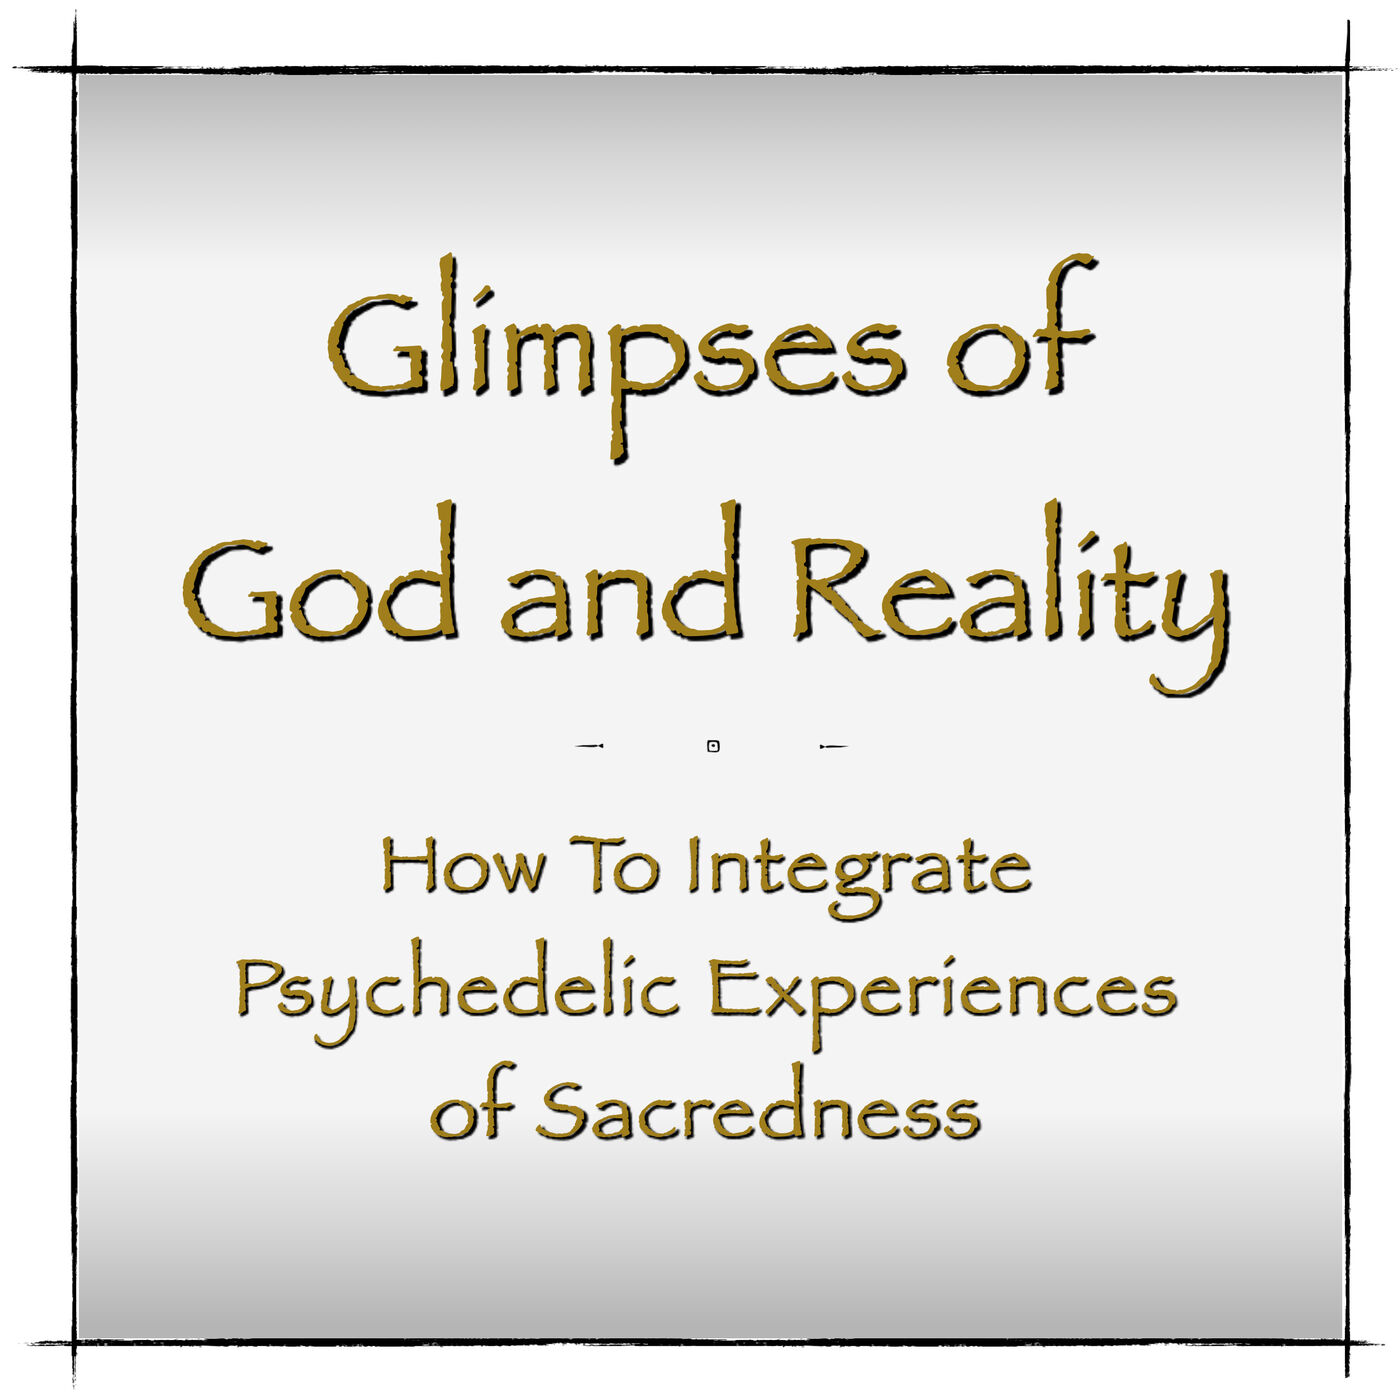 Glimpses of God and Reality - How To Integrate Psychedelic Experiences of Sacredness